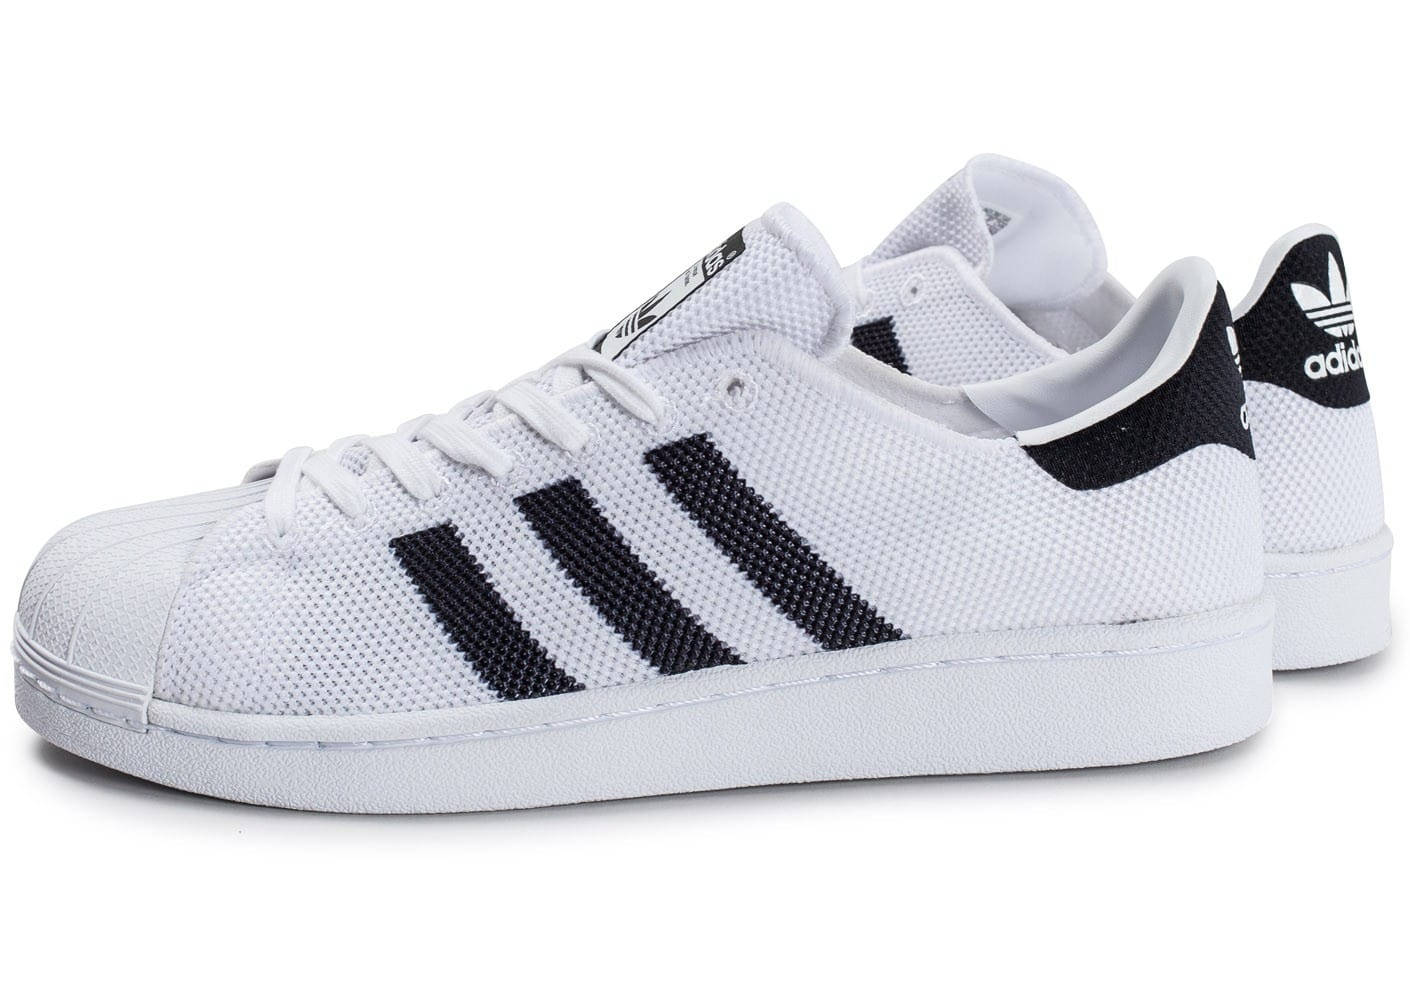 Chaussures Adidas Campus blanches Casual homme